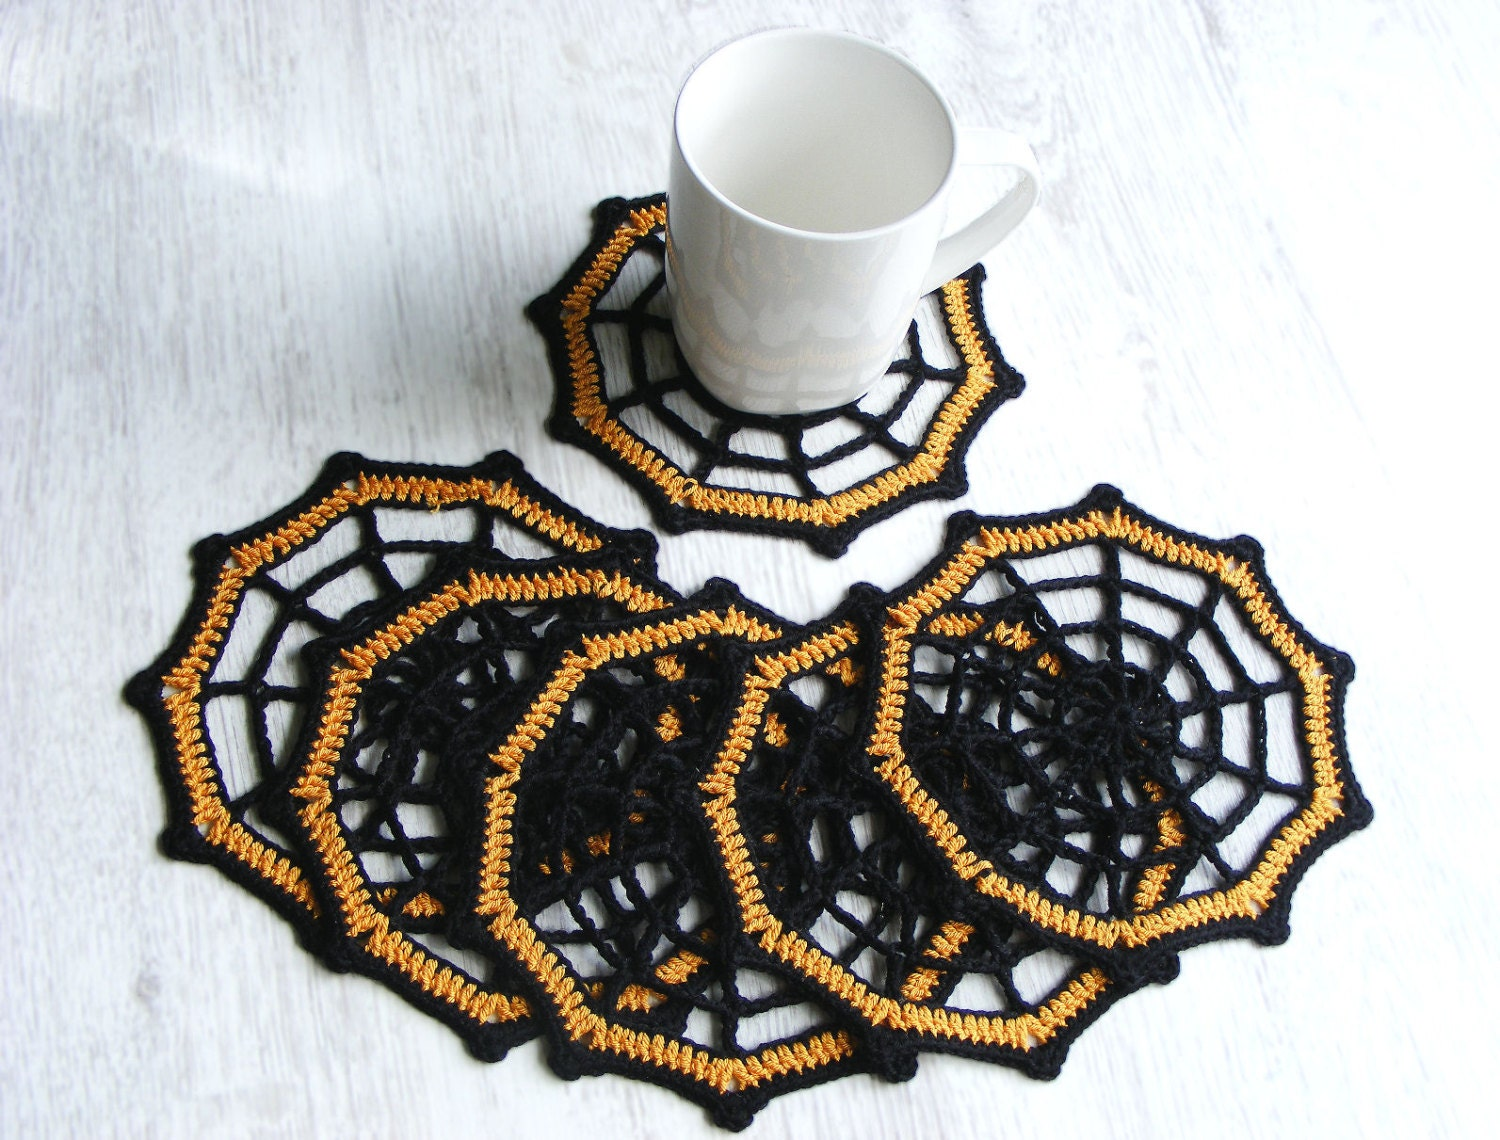 halloween coasters set of 6 crochet spider web coasters by